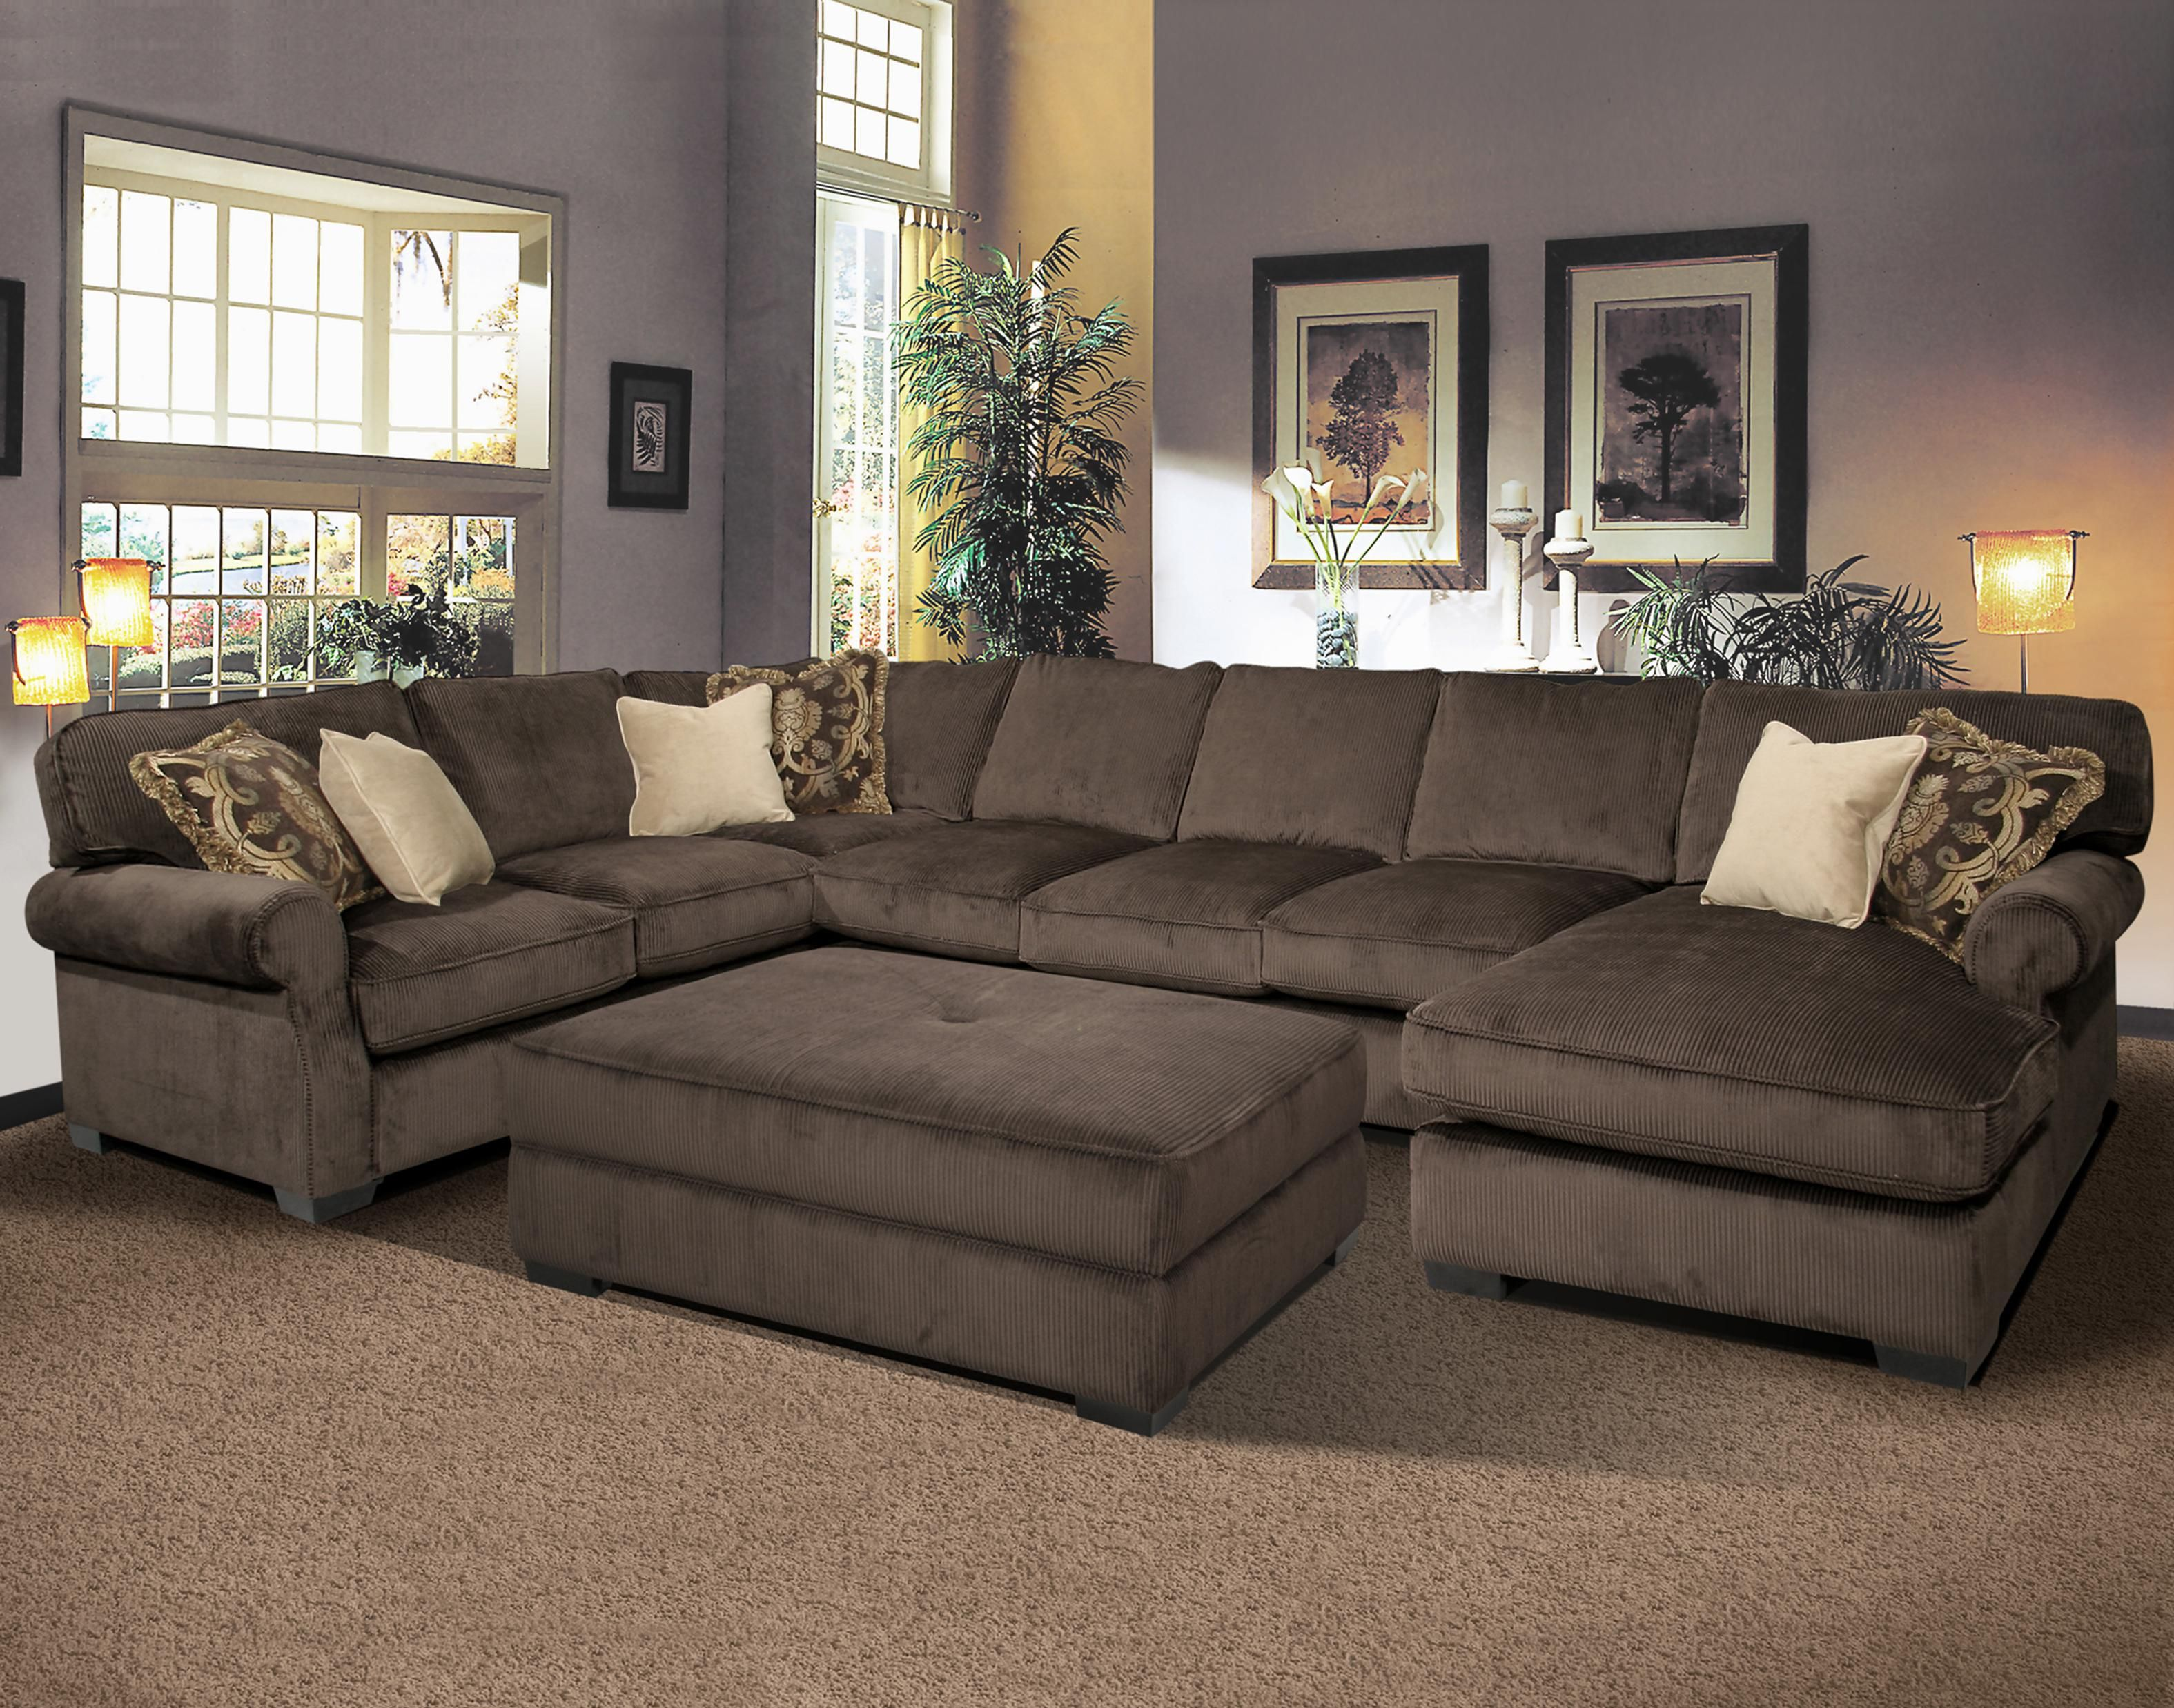 BIG AND FY Grand Island 7 Seat Sectional Sofa with Right